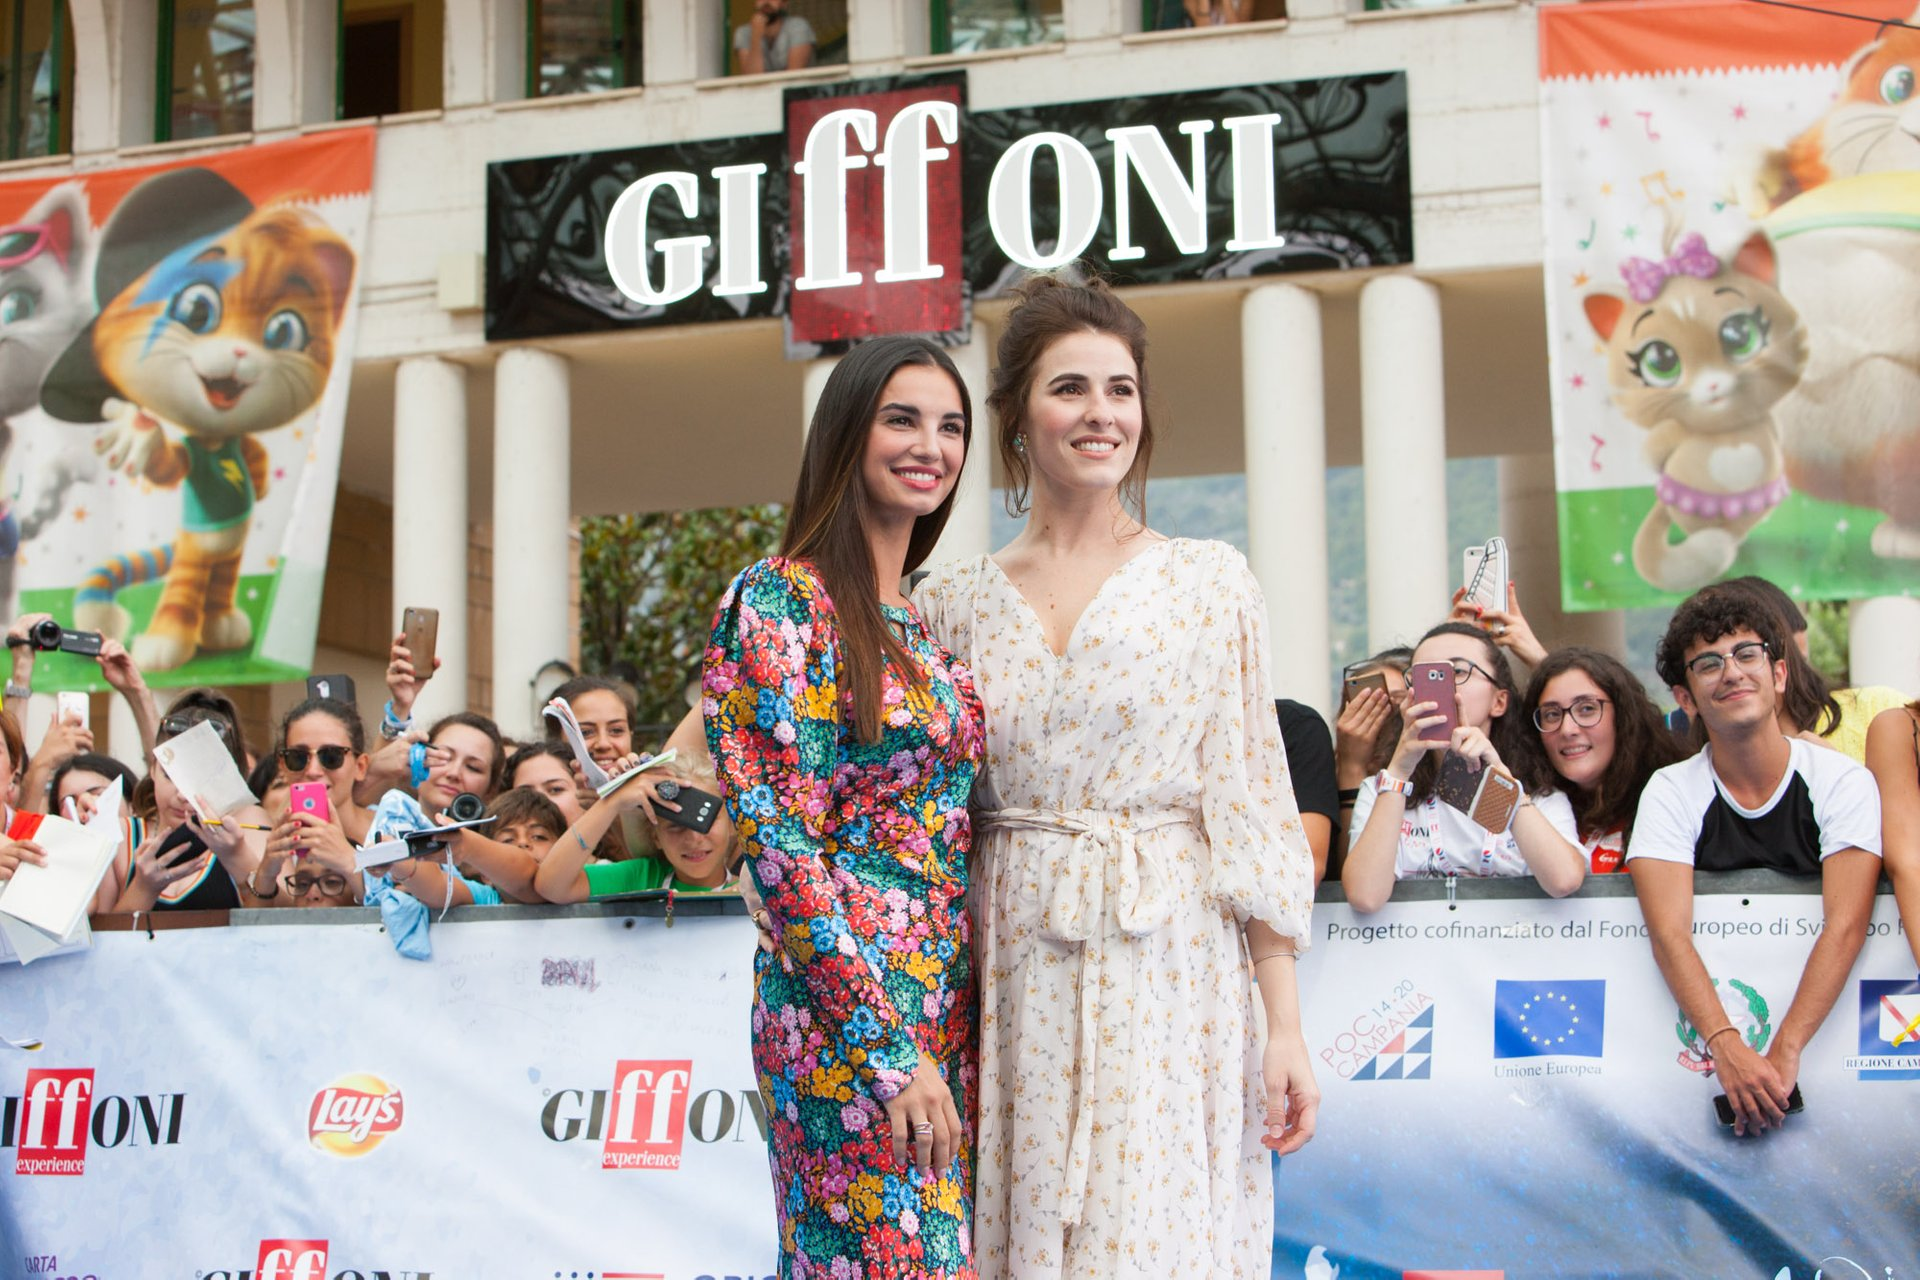 Giffoni Film Festival in Italy 2020 - Best Time